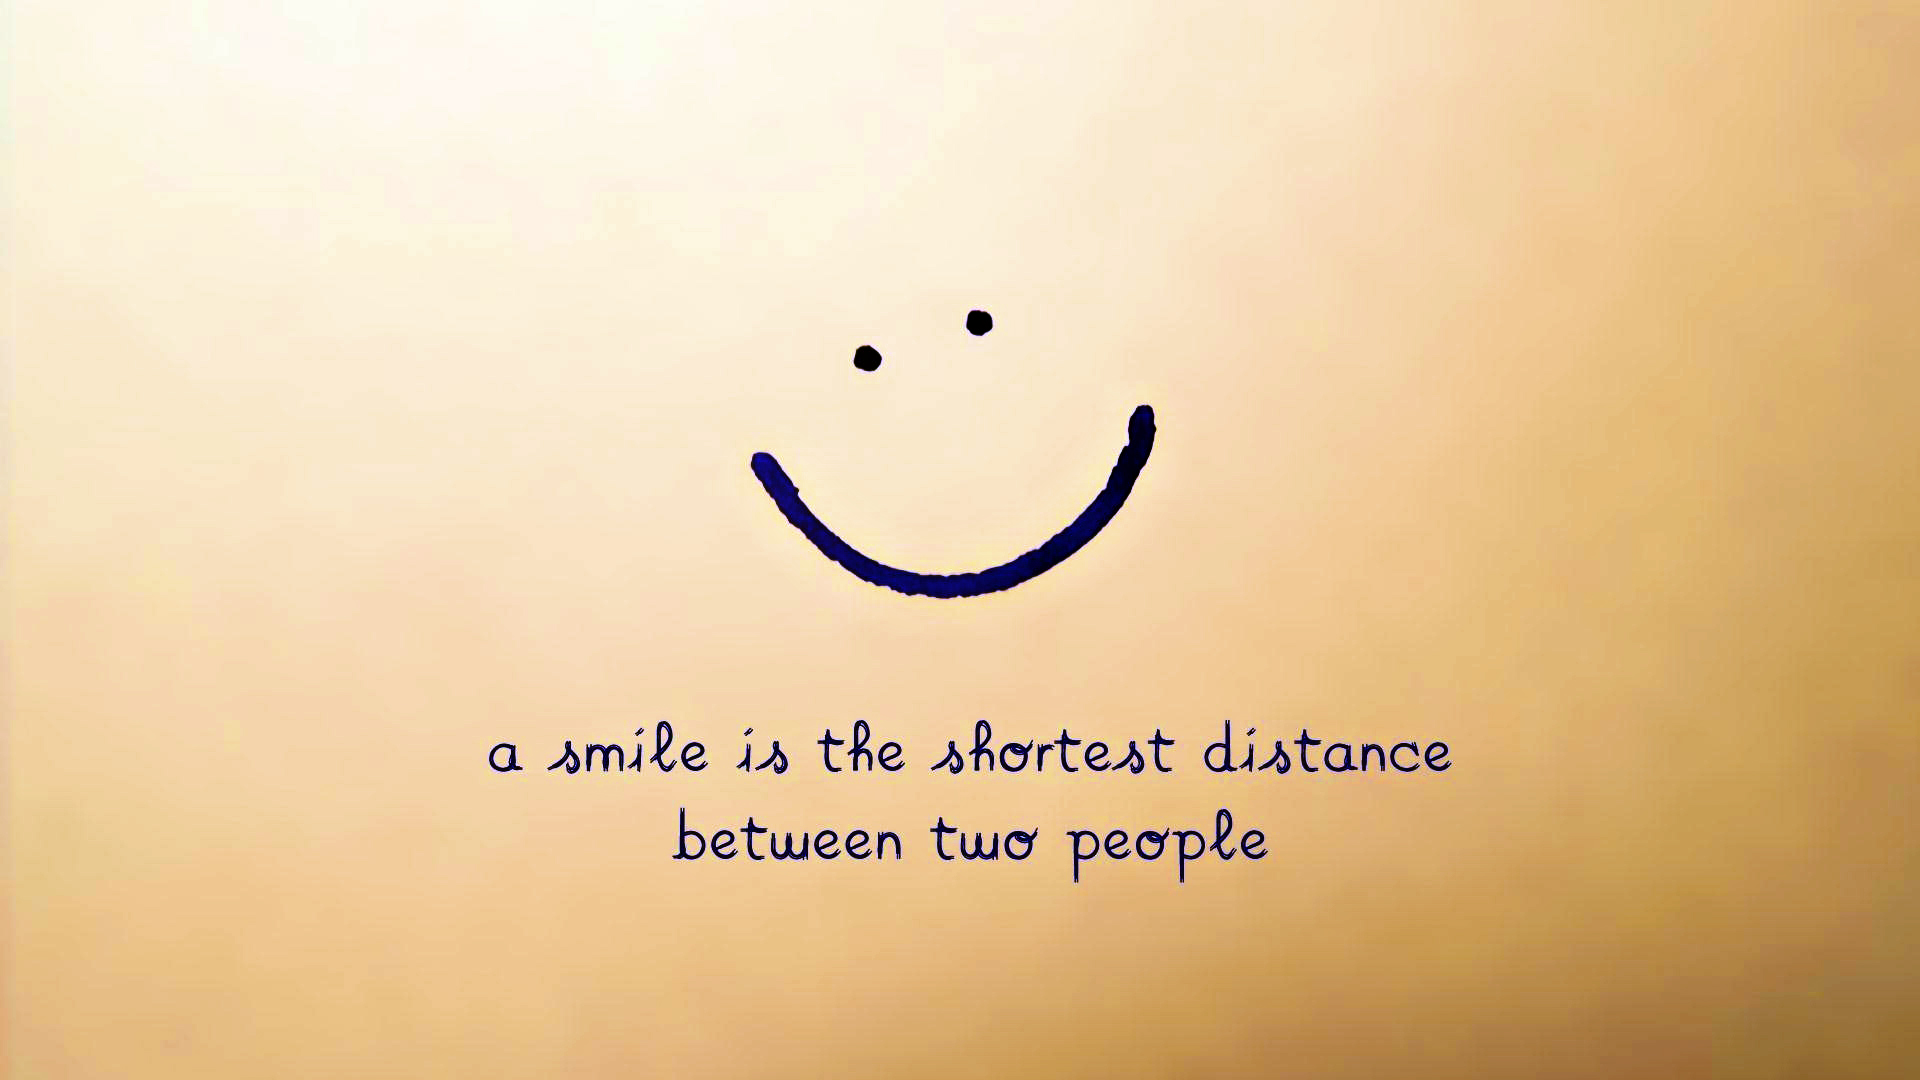 The shortest distance between two people is a smile.